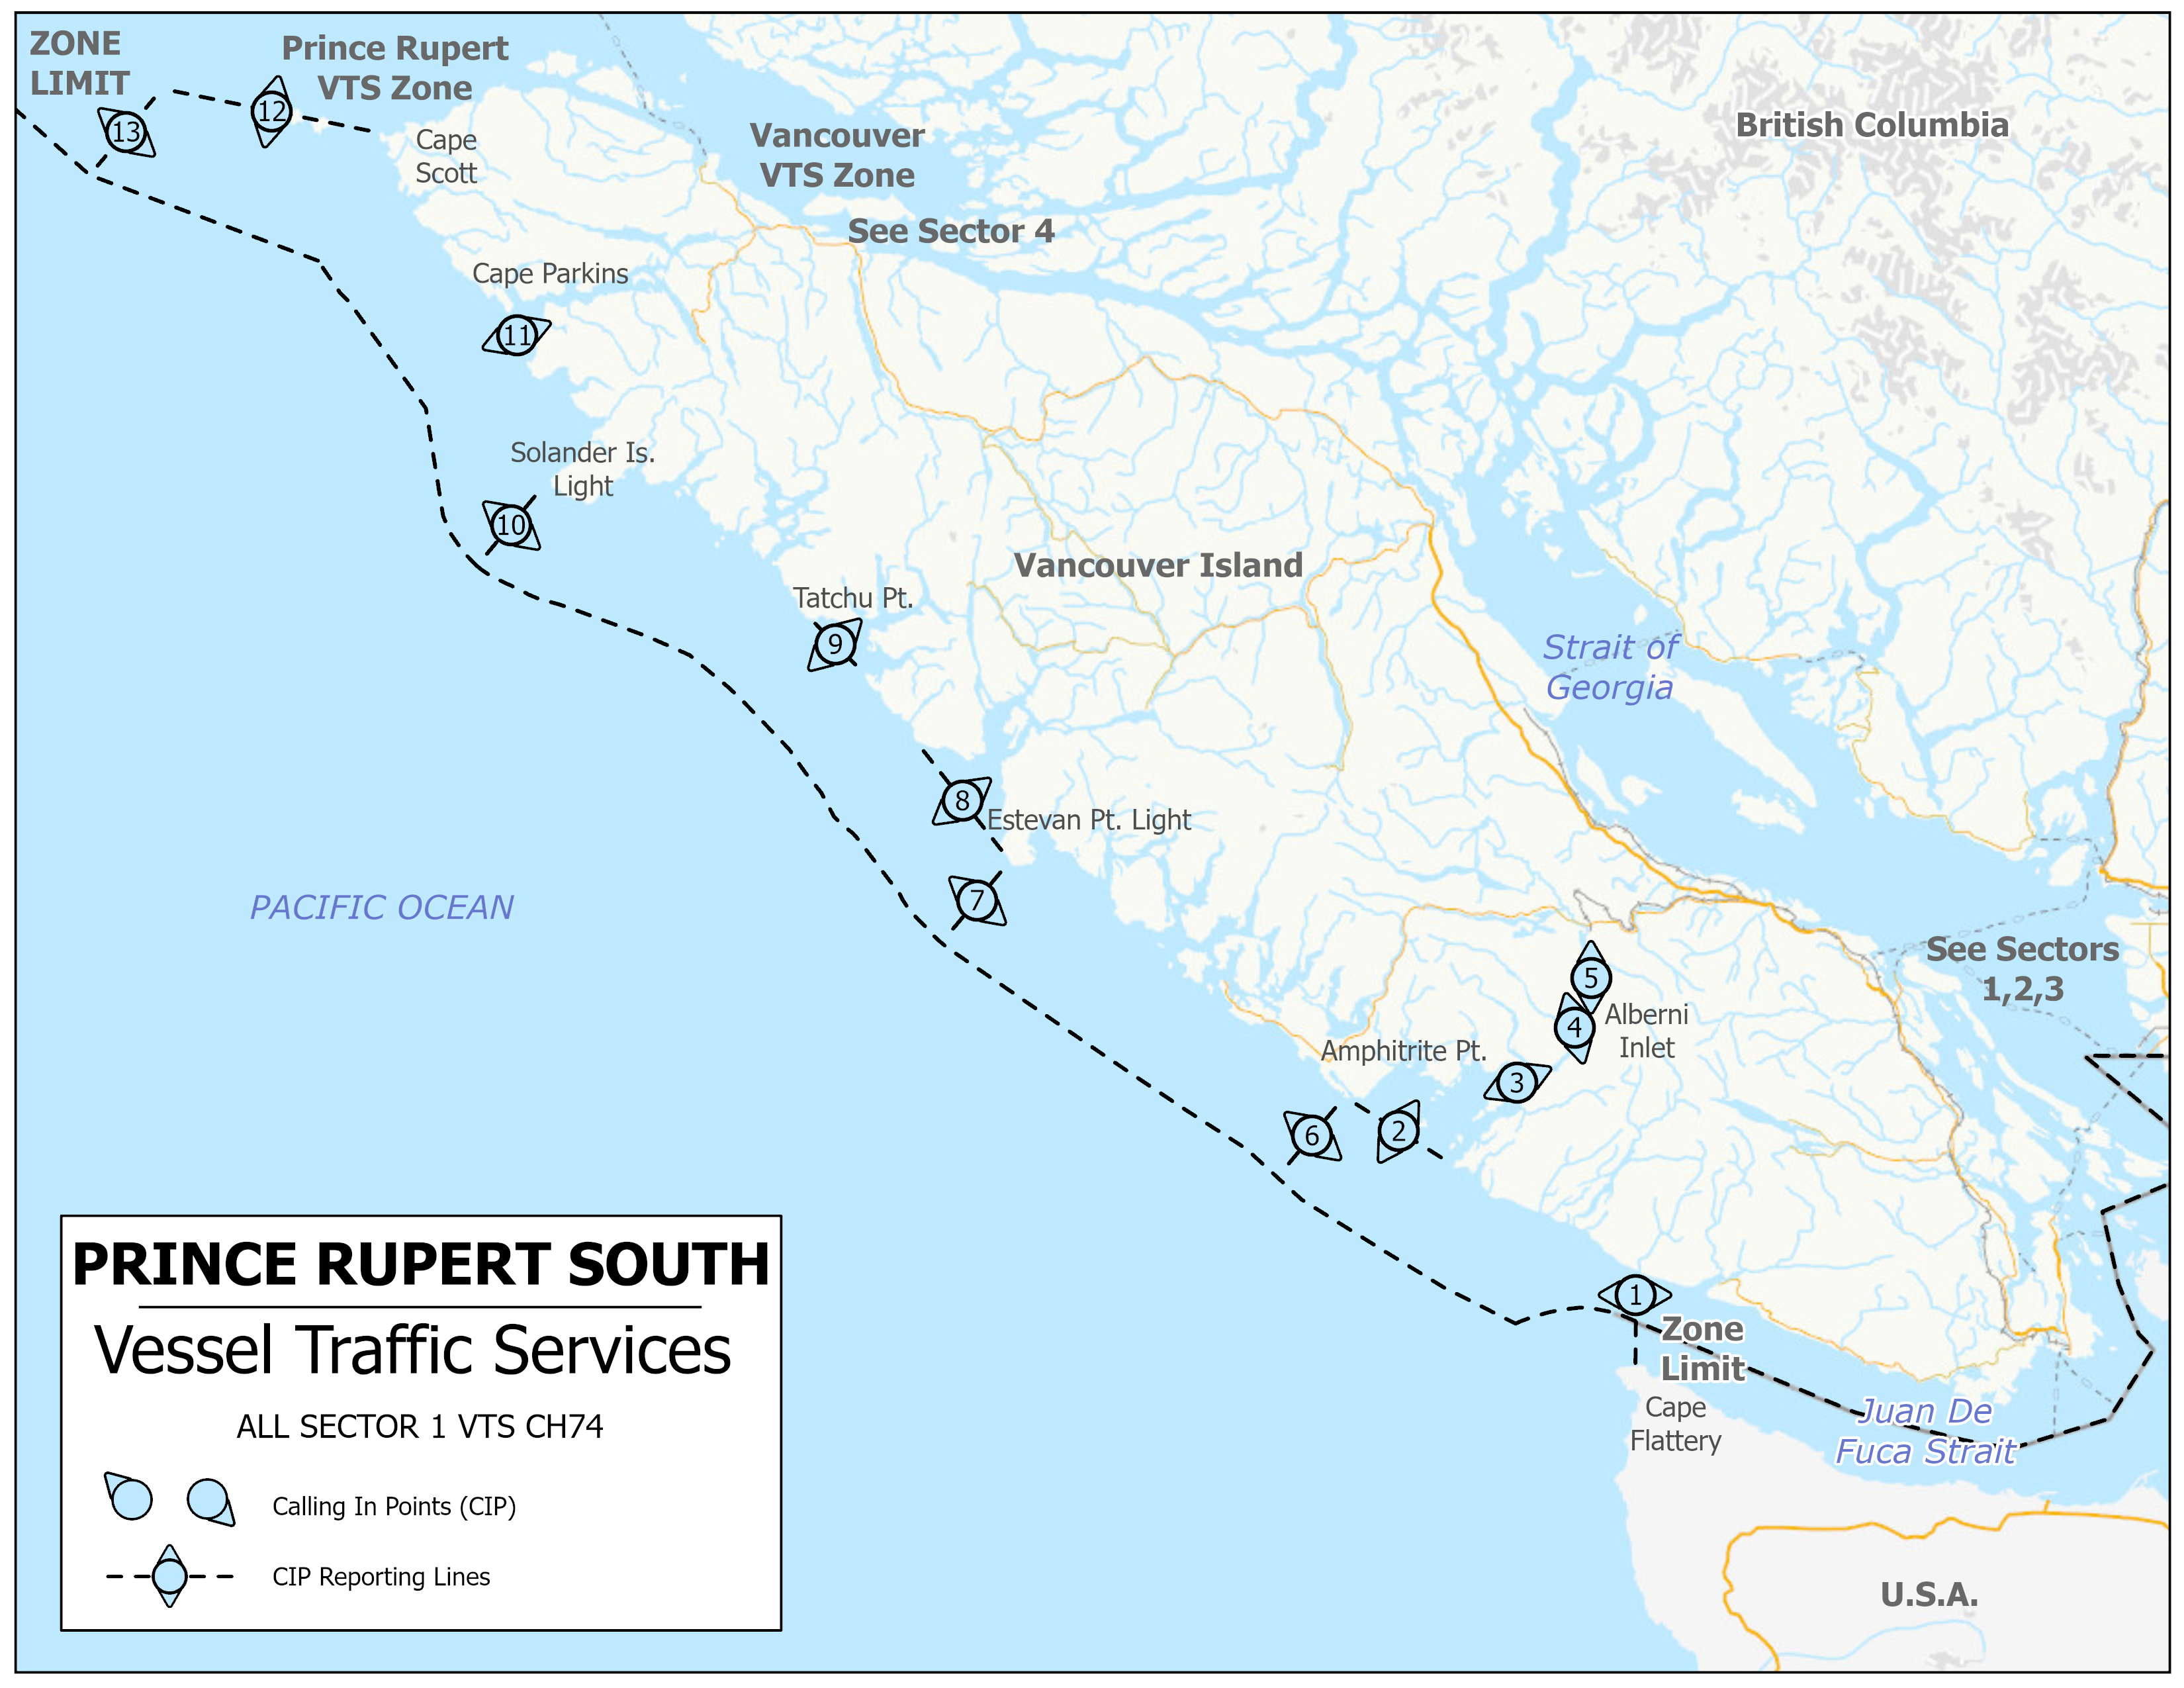 Tofino - Vessel Traffic Services